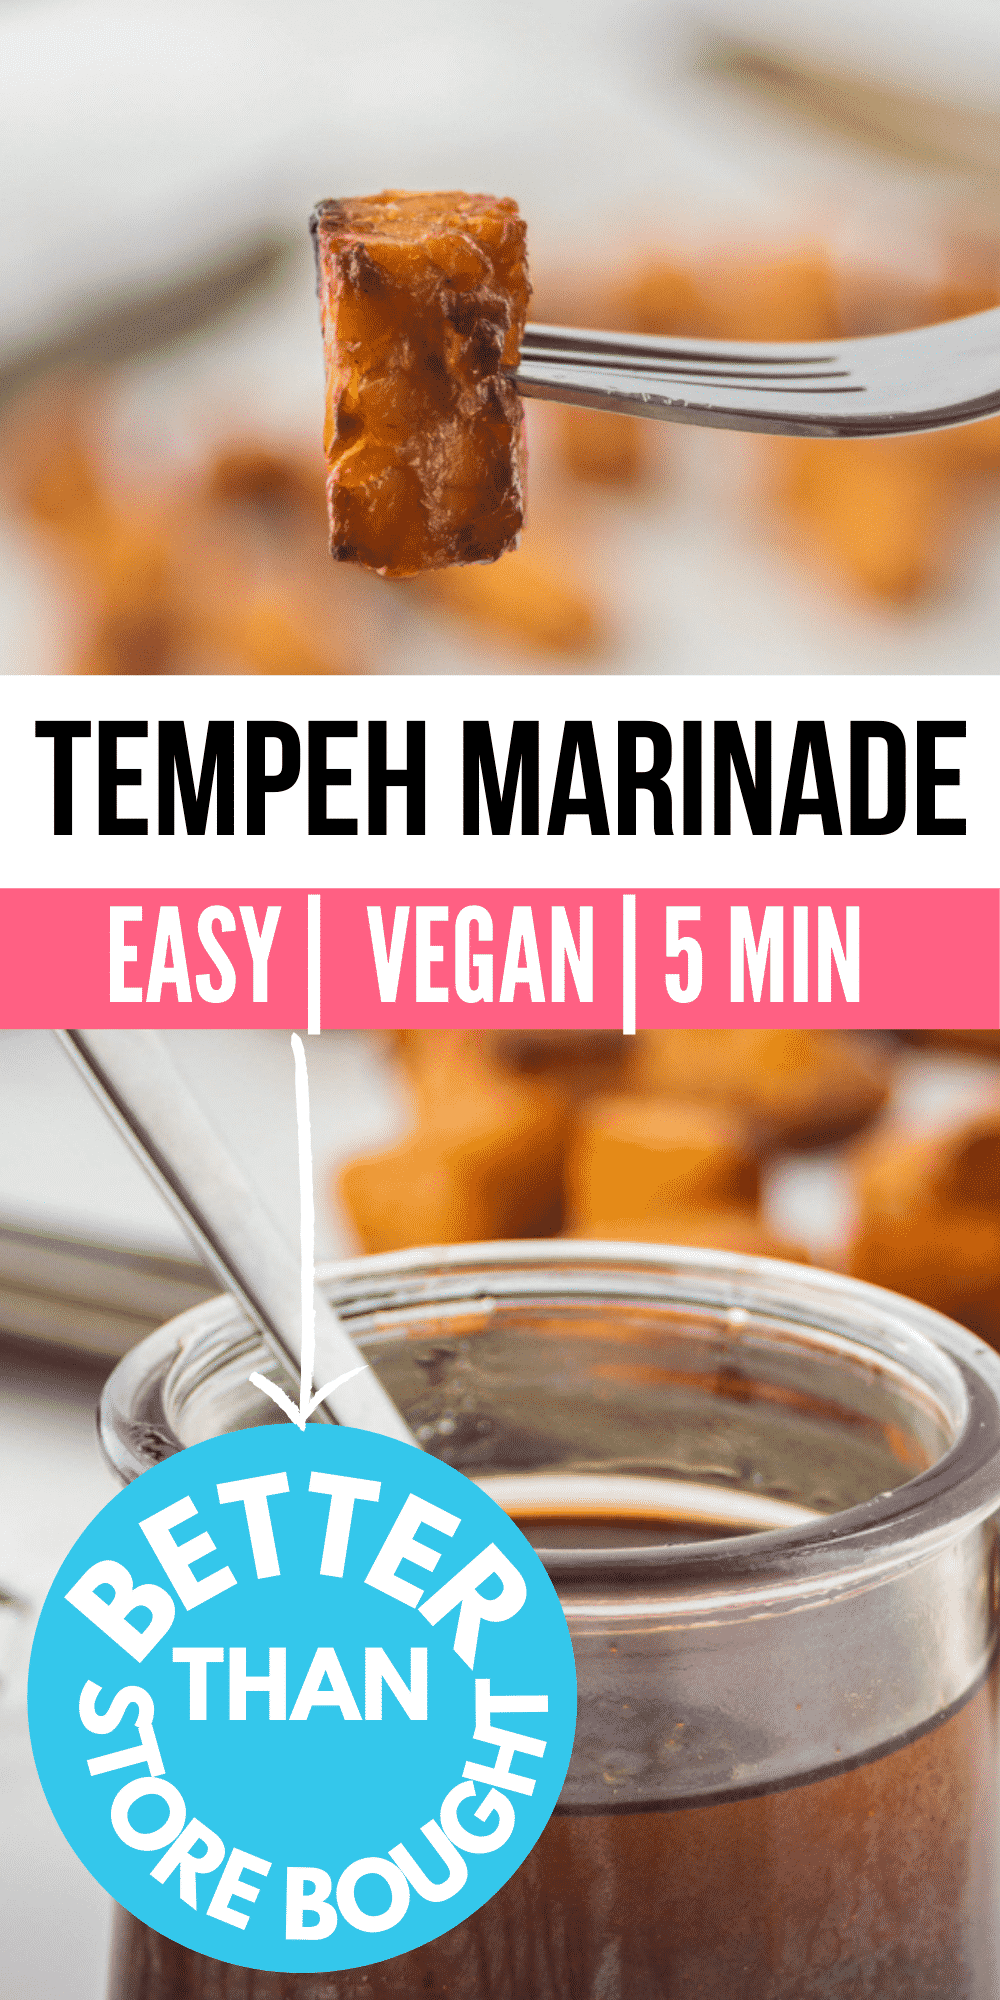 Tempeh Marinade is so easy and brings tons of flavor to this plant-based protein. Whisk it up in mere minutes and marinate all your favs, from tempeh and tofu to veggies, too! #vegan #tempehmarinade